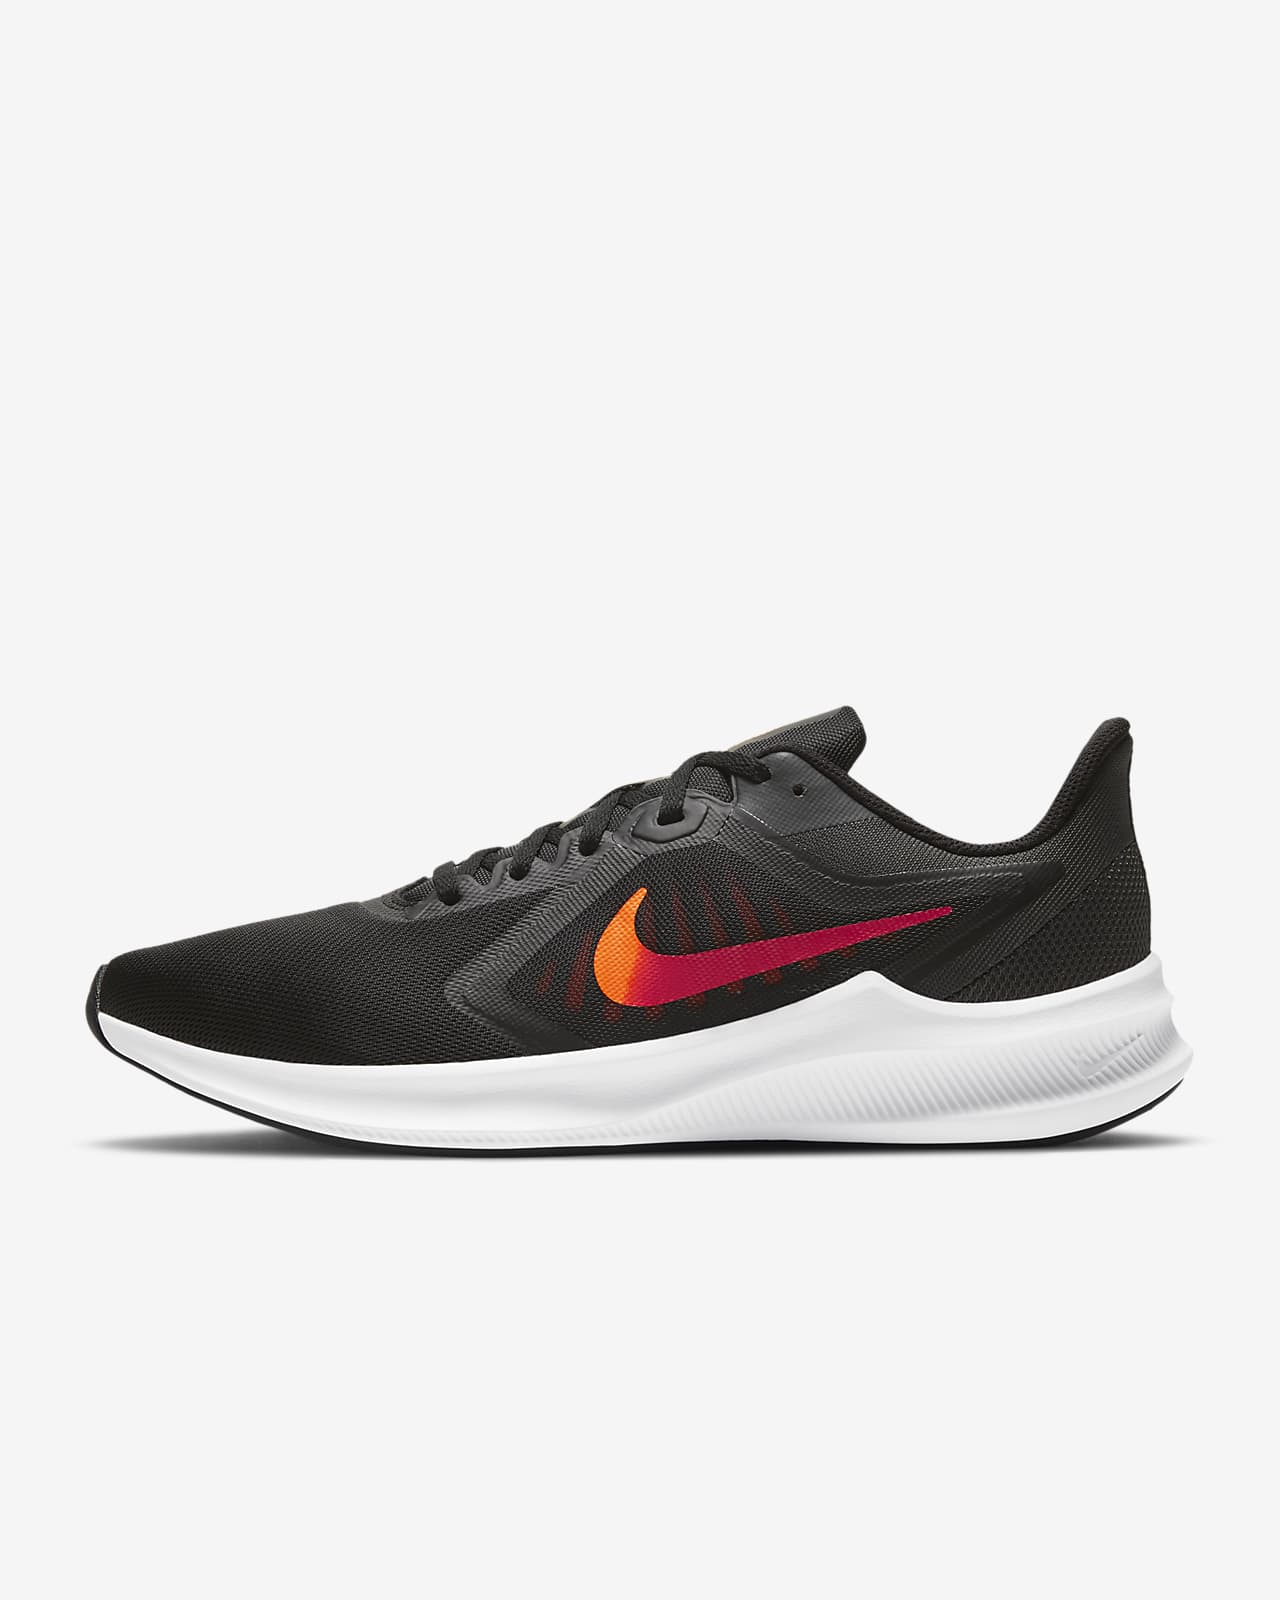 Chaussure de running Nike Downshifter 10 pour Homme